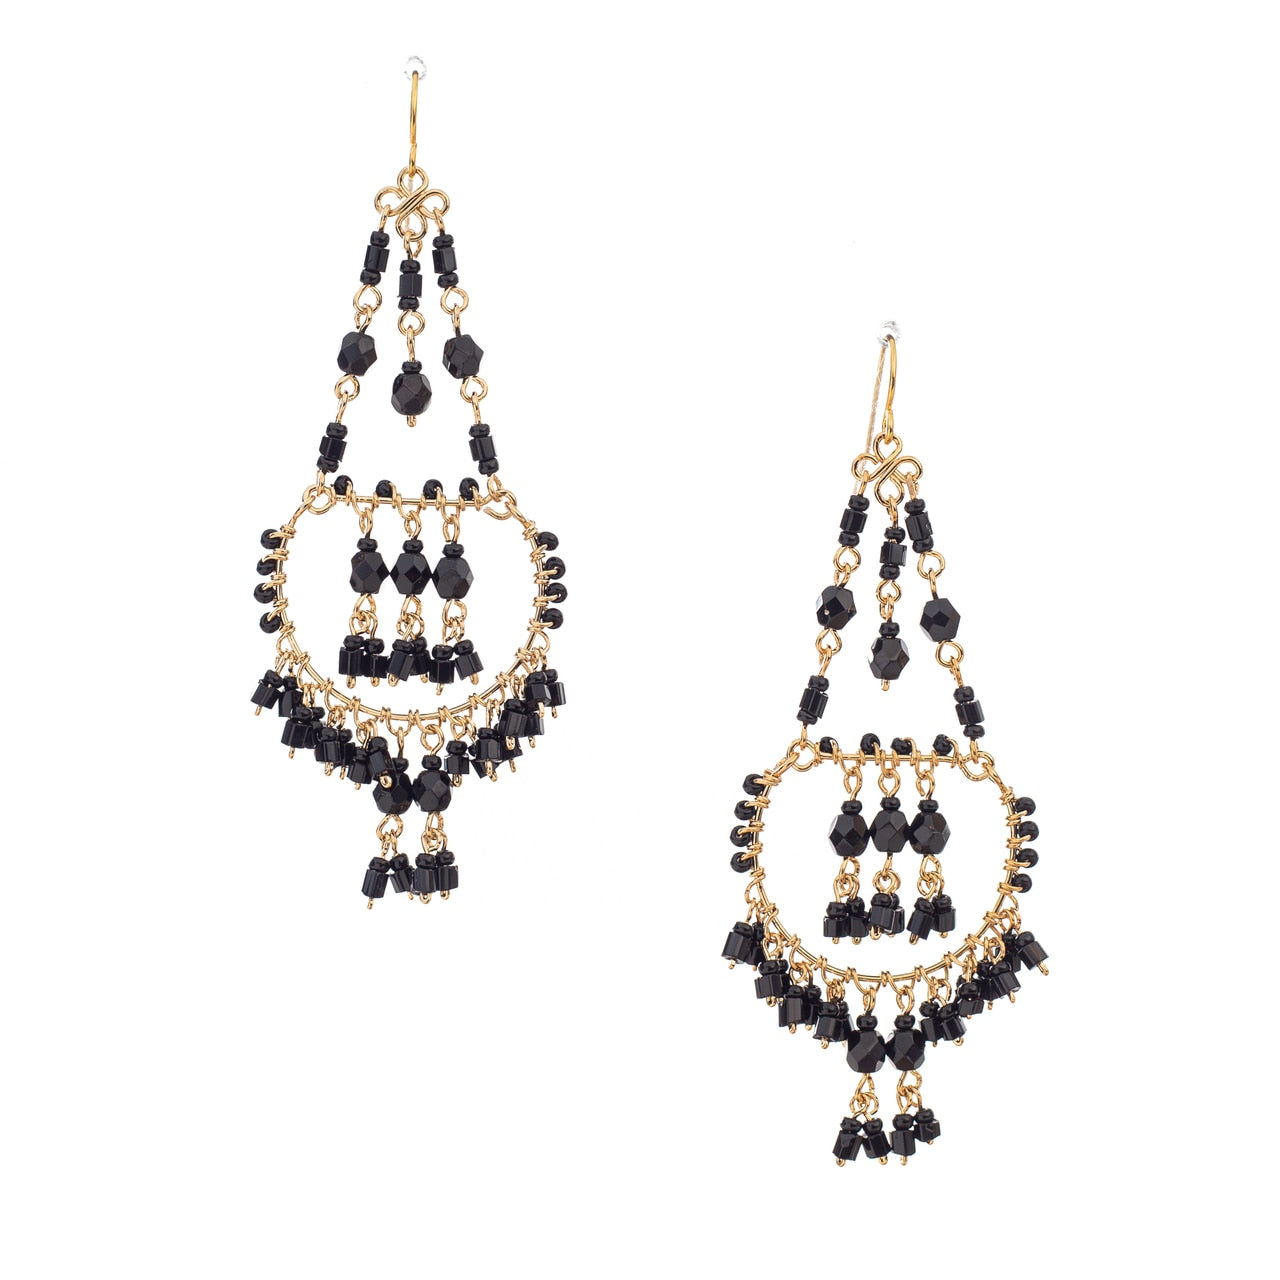 Black Chandy Earrings